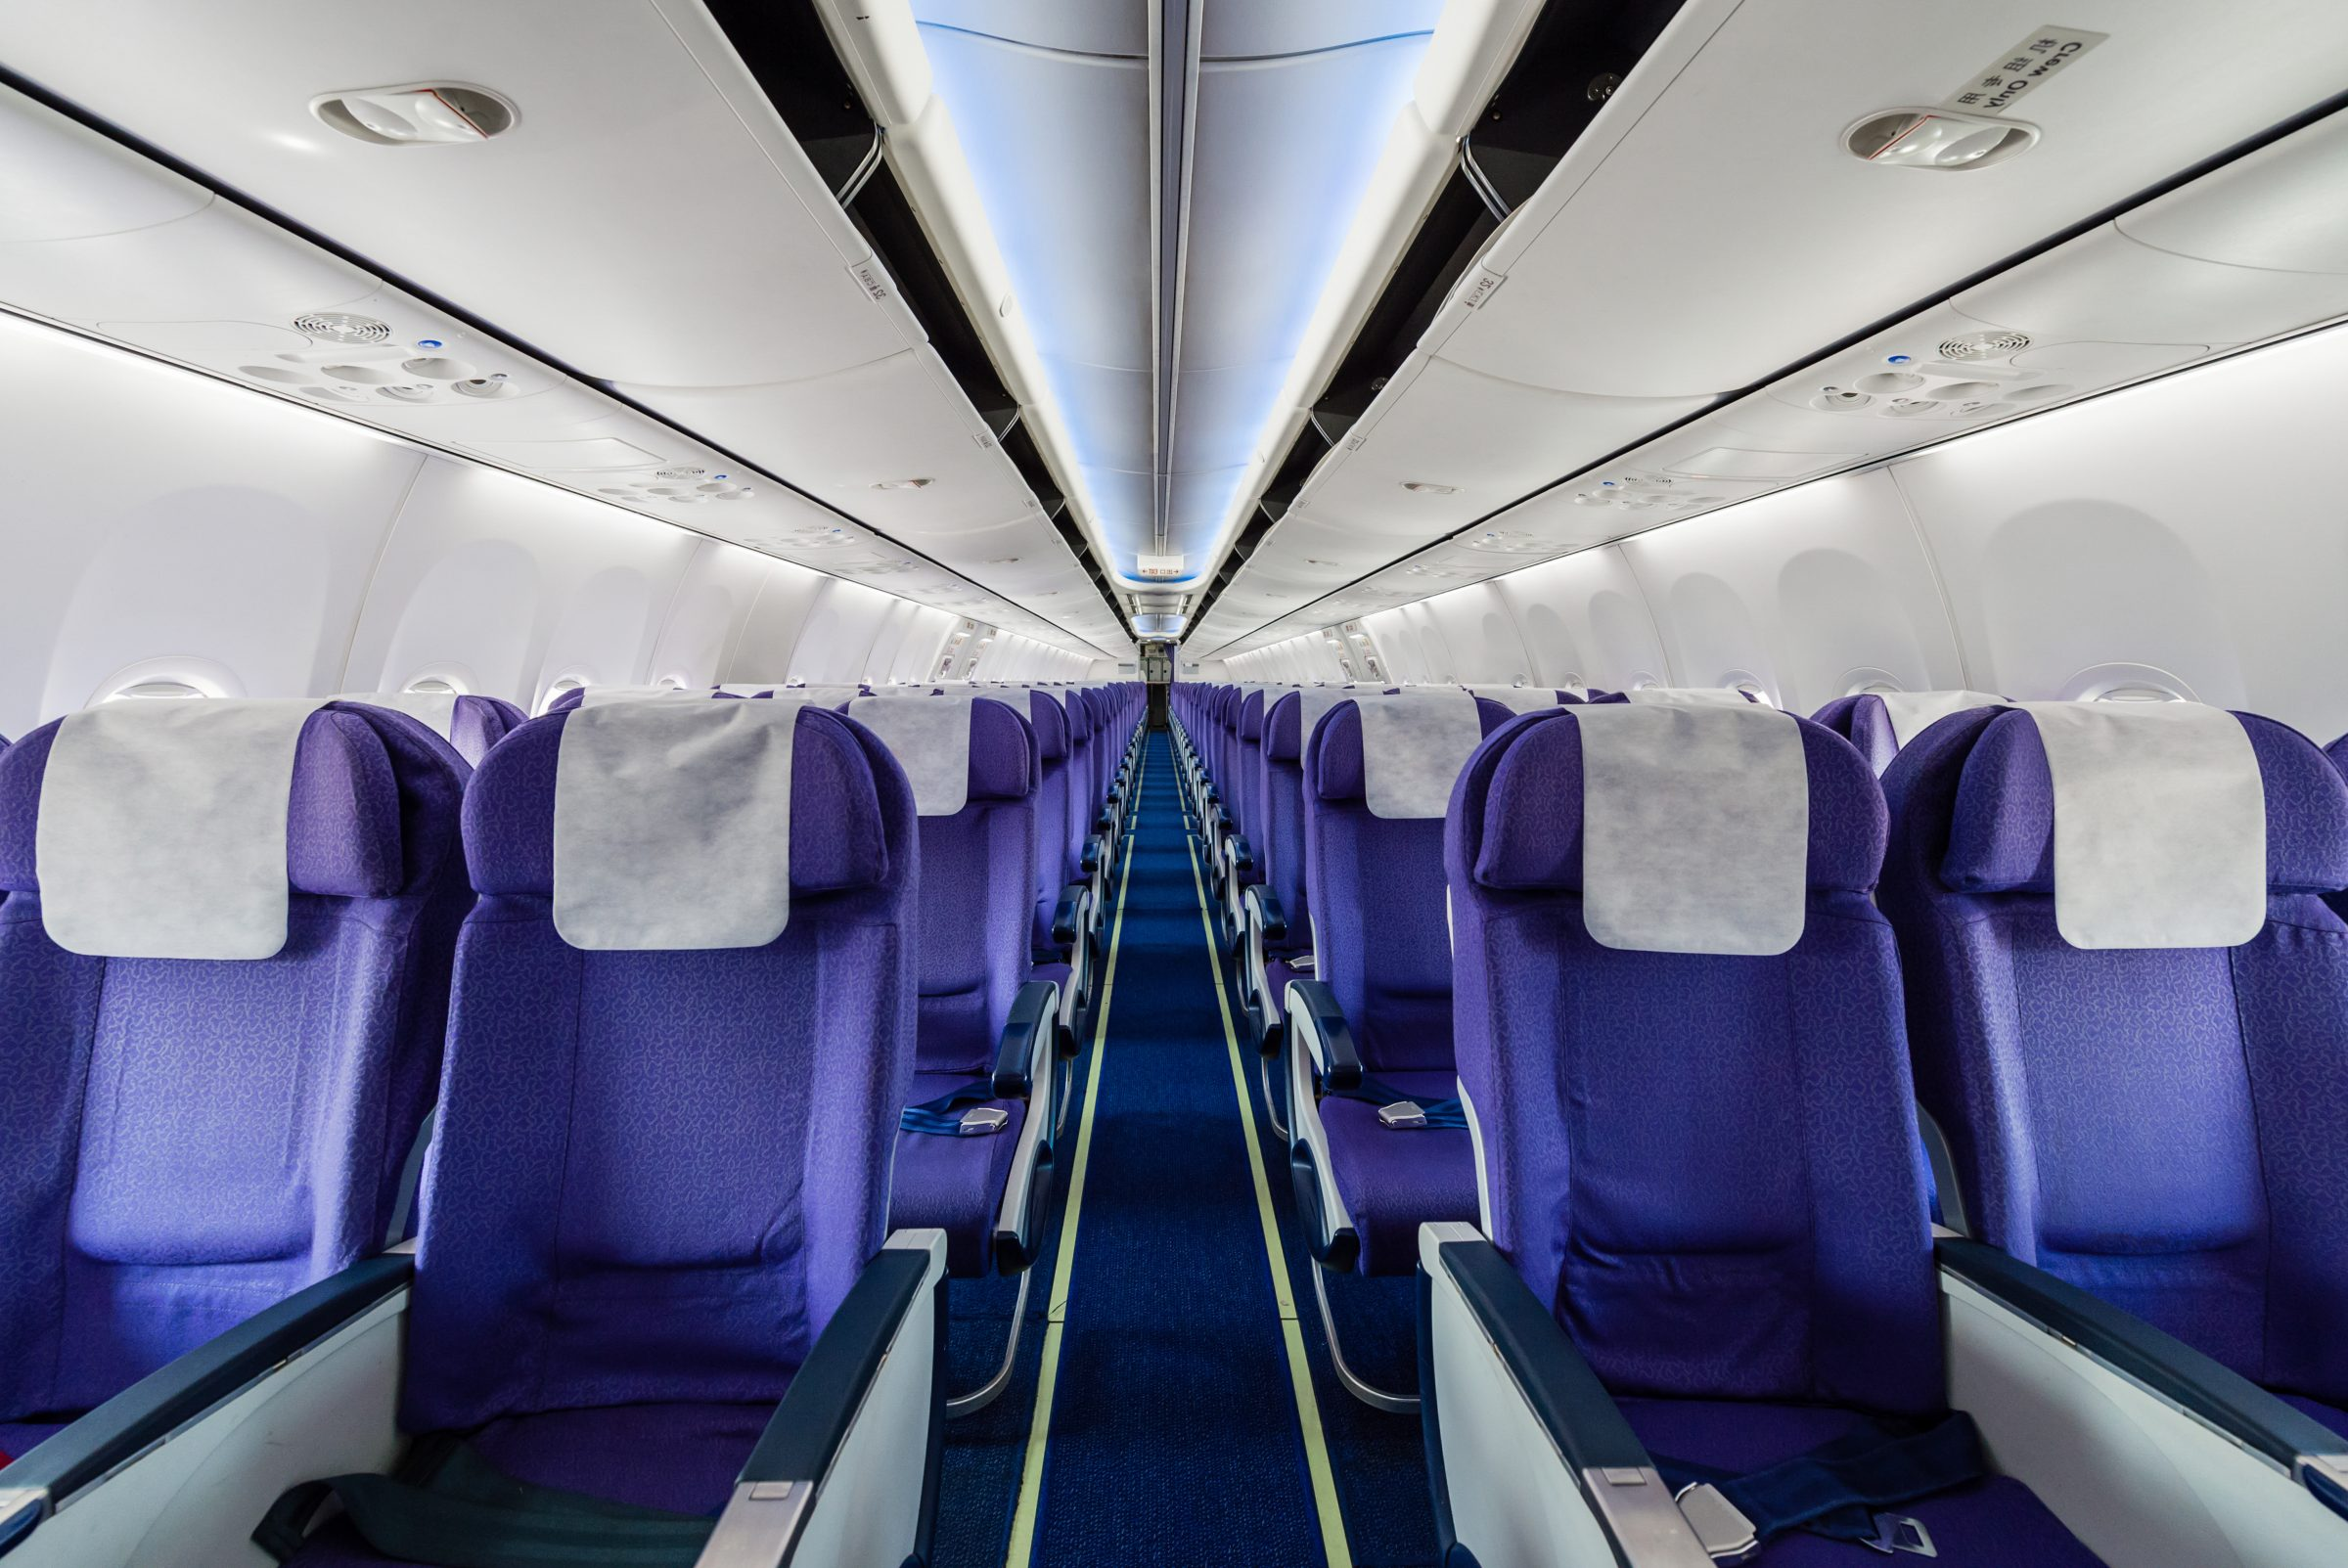 Airline Obesity Policies: Will You Have to Buy an Extra Seat